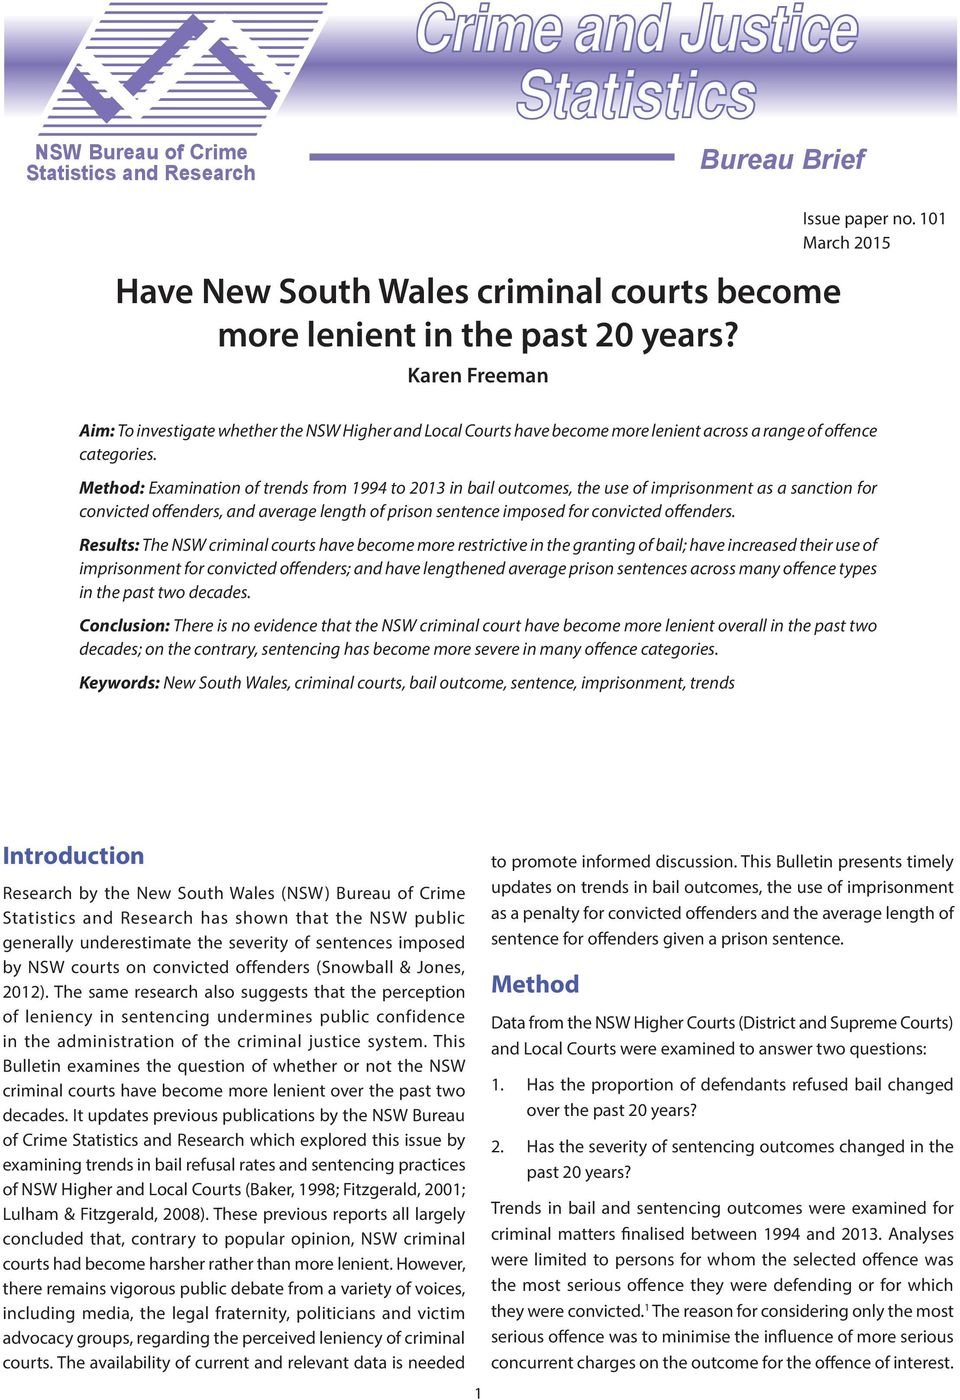 Method: Examination of trends from 1994 to 2013 in bail outcomes, the use of imprisonment as a sanction for convicted offenders, and average length of prison sentence imposed for convicted offenders.